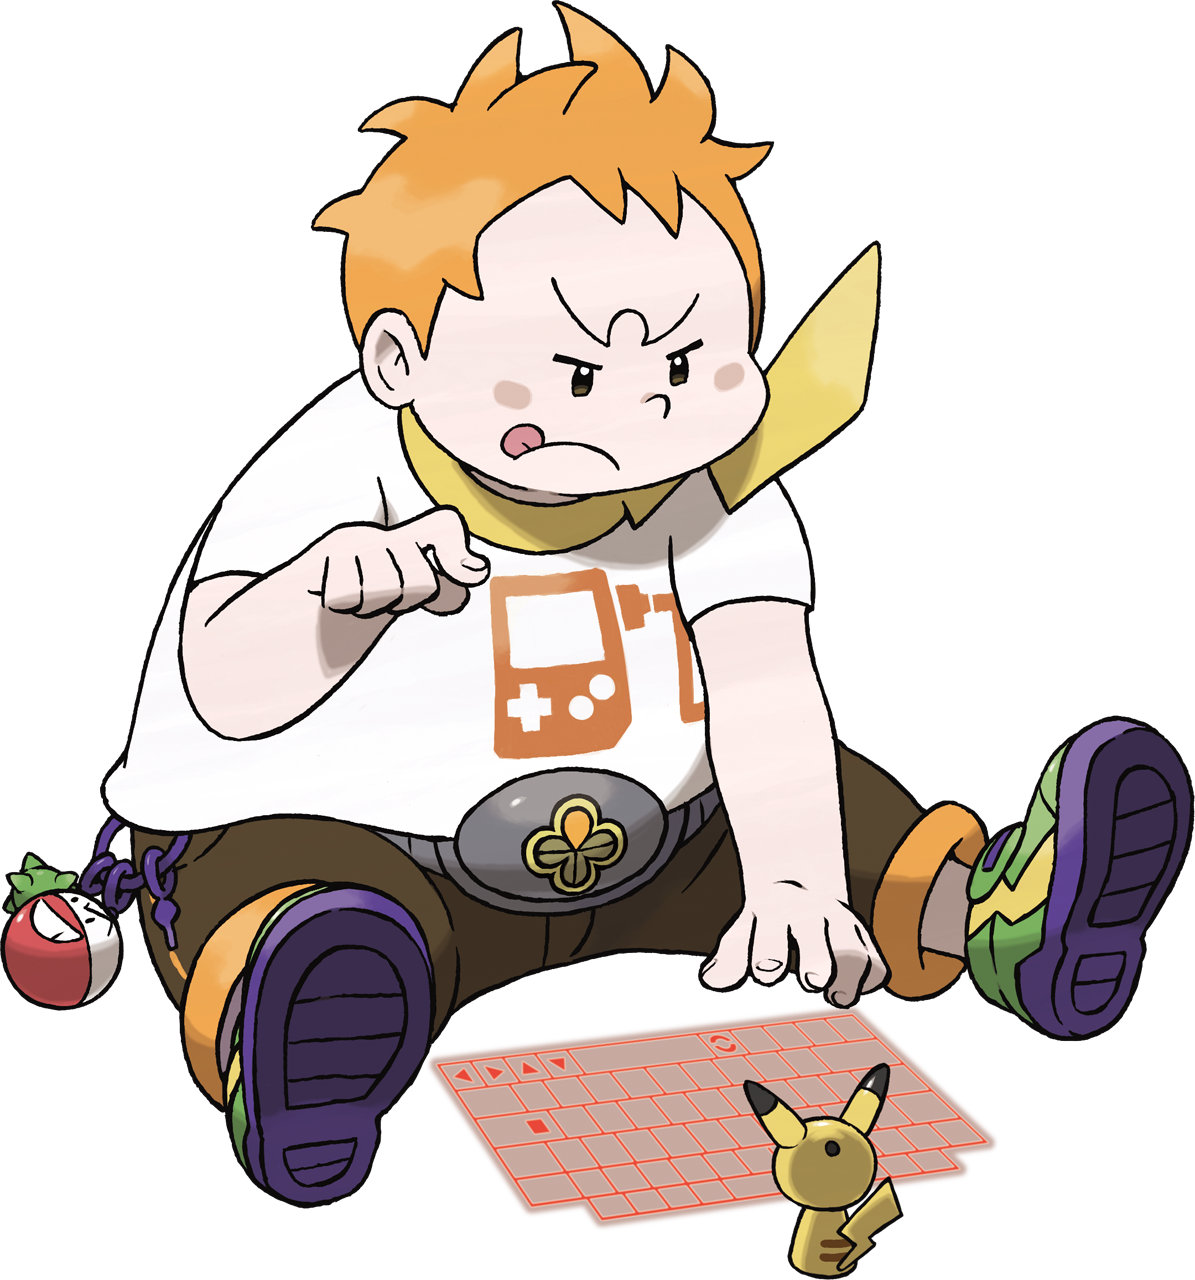 Sun and moon watch face clipart image royalty free Sophocles - Bulbapedia, the community-driven Pokémon encyclopedia image royalty free